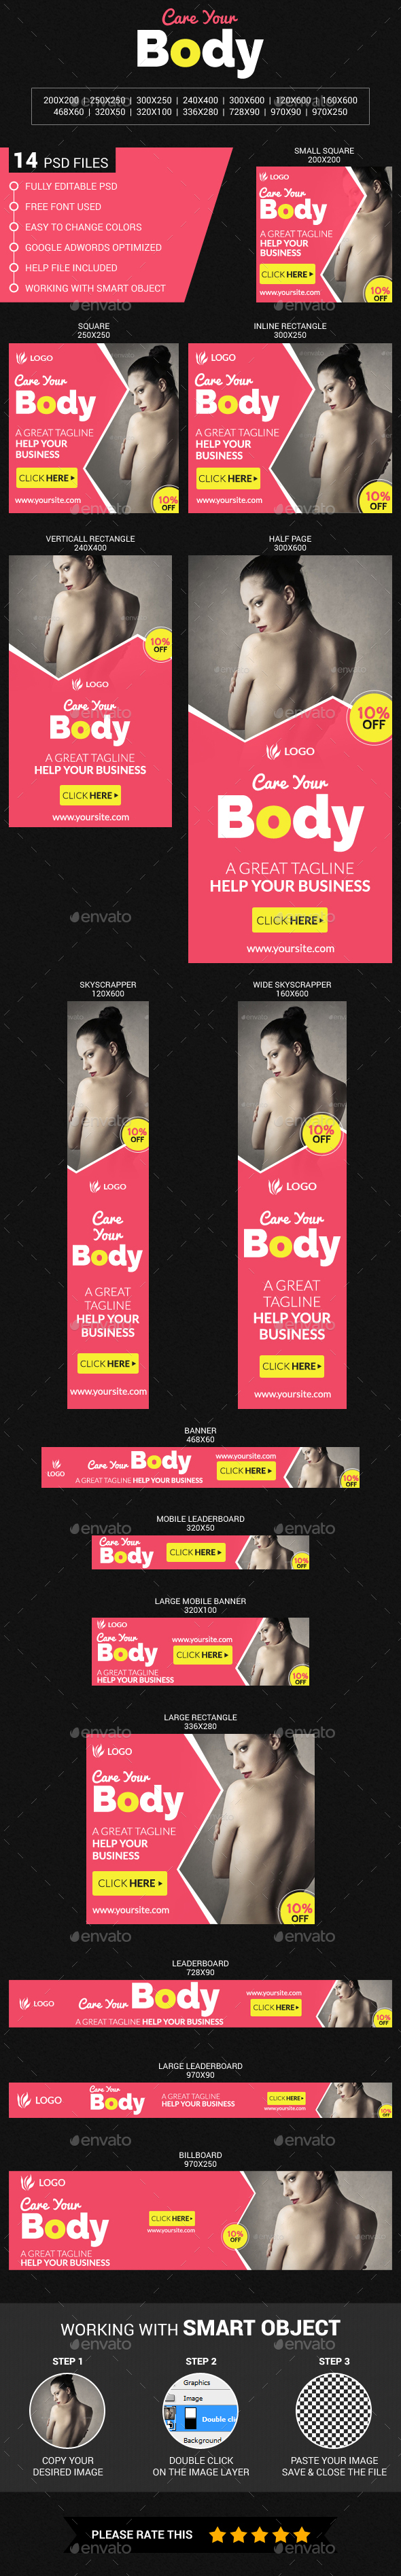 Body Care - Banners & Ads Web Elements